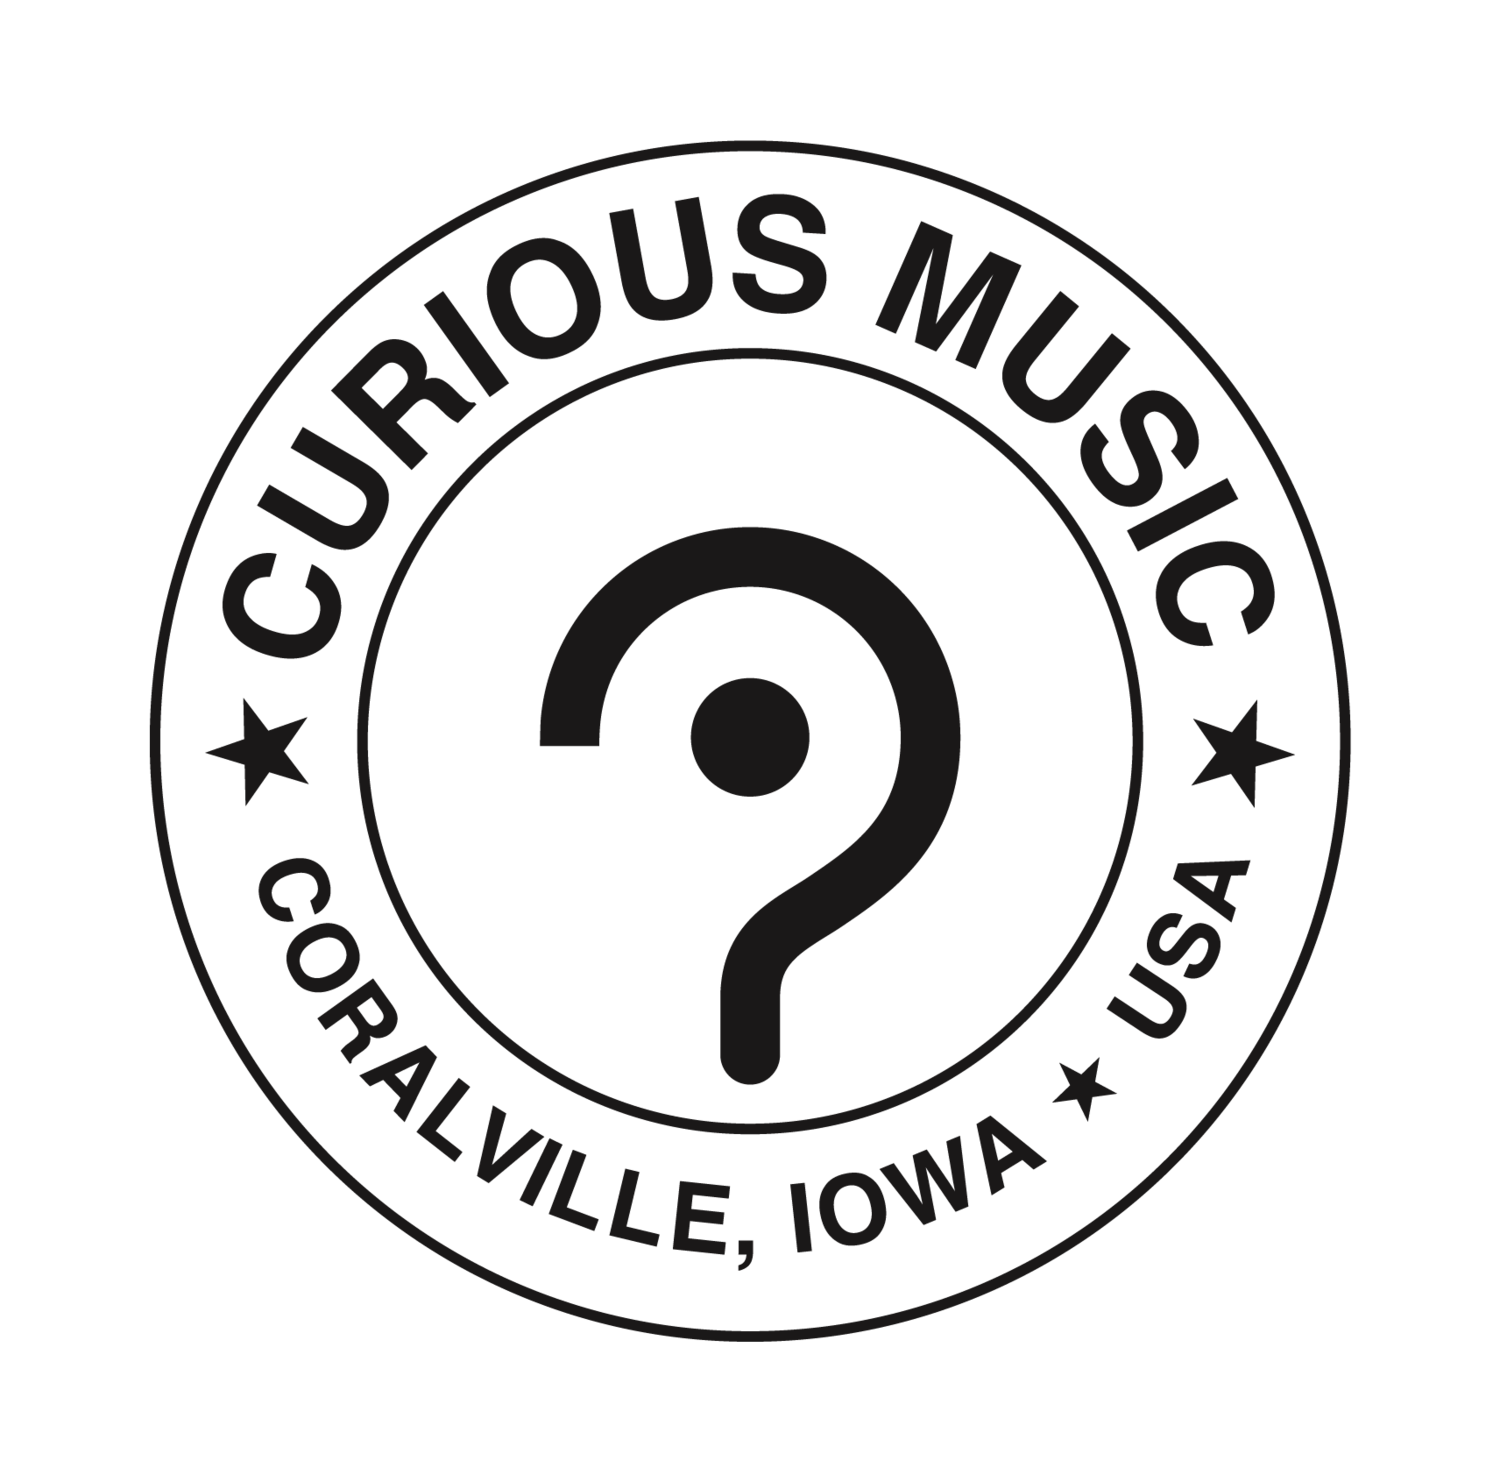 Curious Music